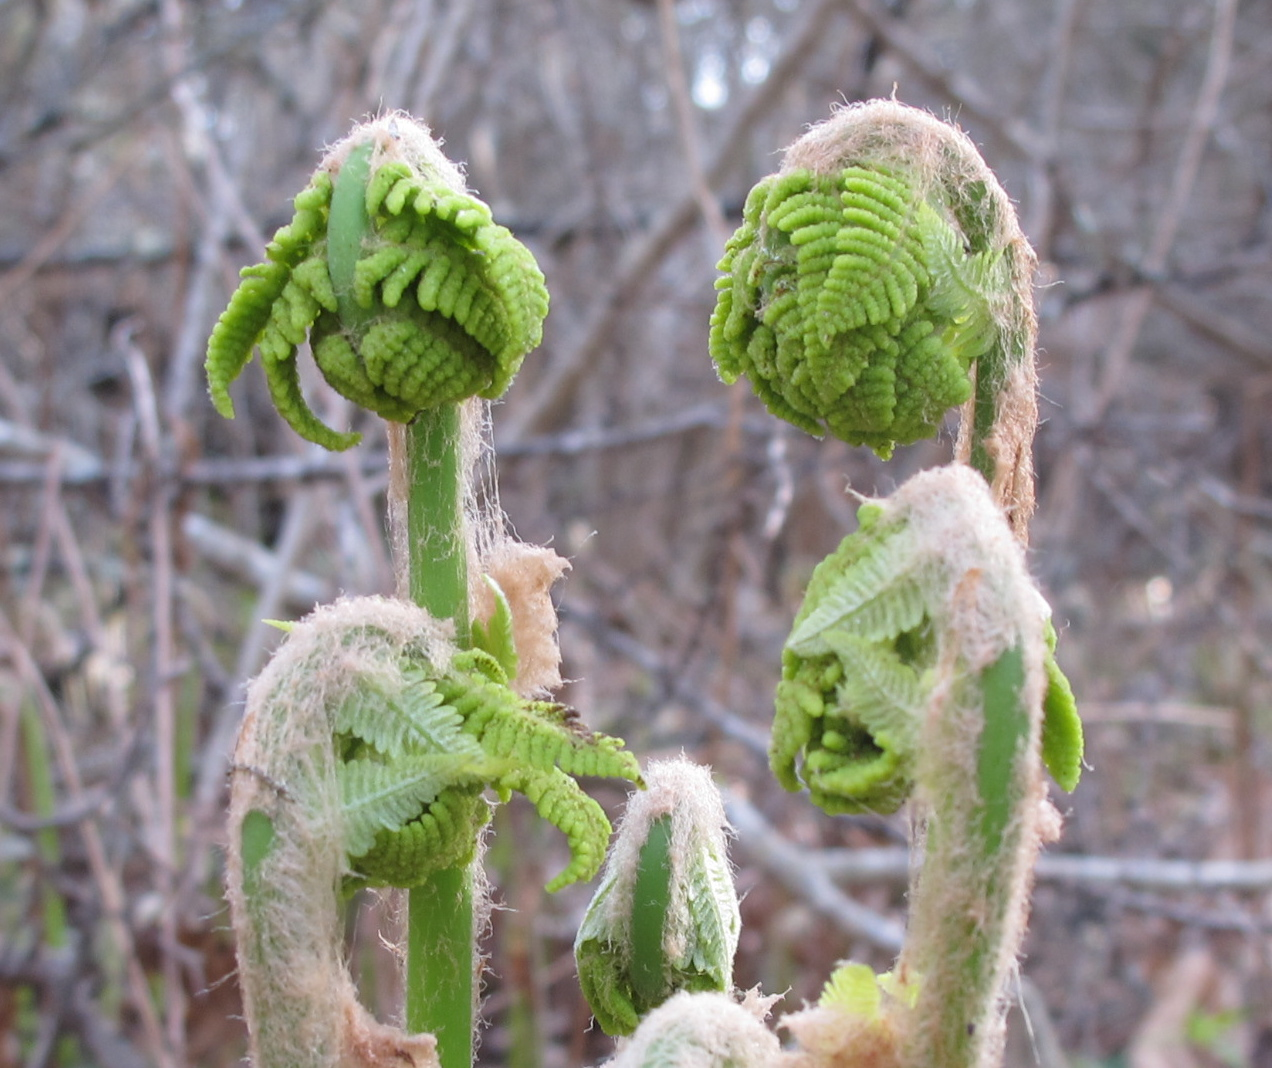 The fiddlehead ferns I showed you last week—when they still had their Justin Bieber haircuts—are unfurling into a new range of creatures, including a goose and an accountant wearing eyeshades.